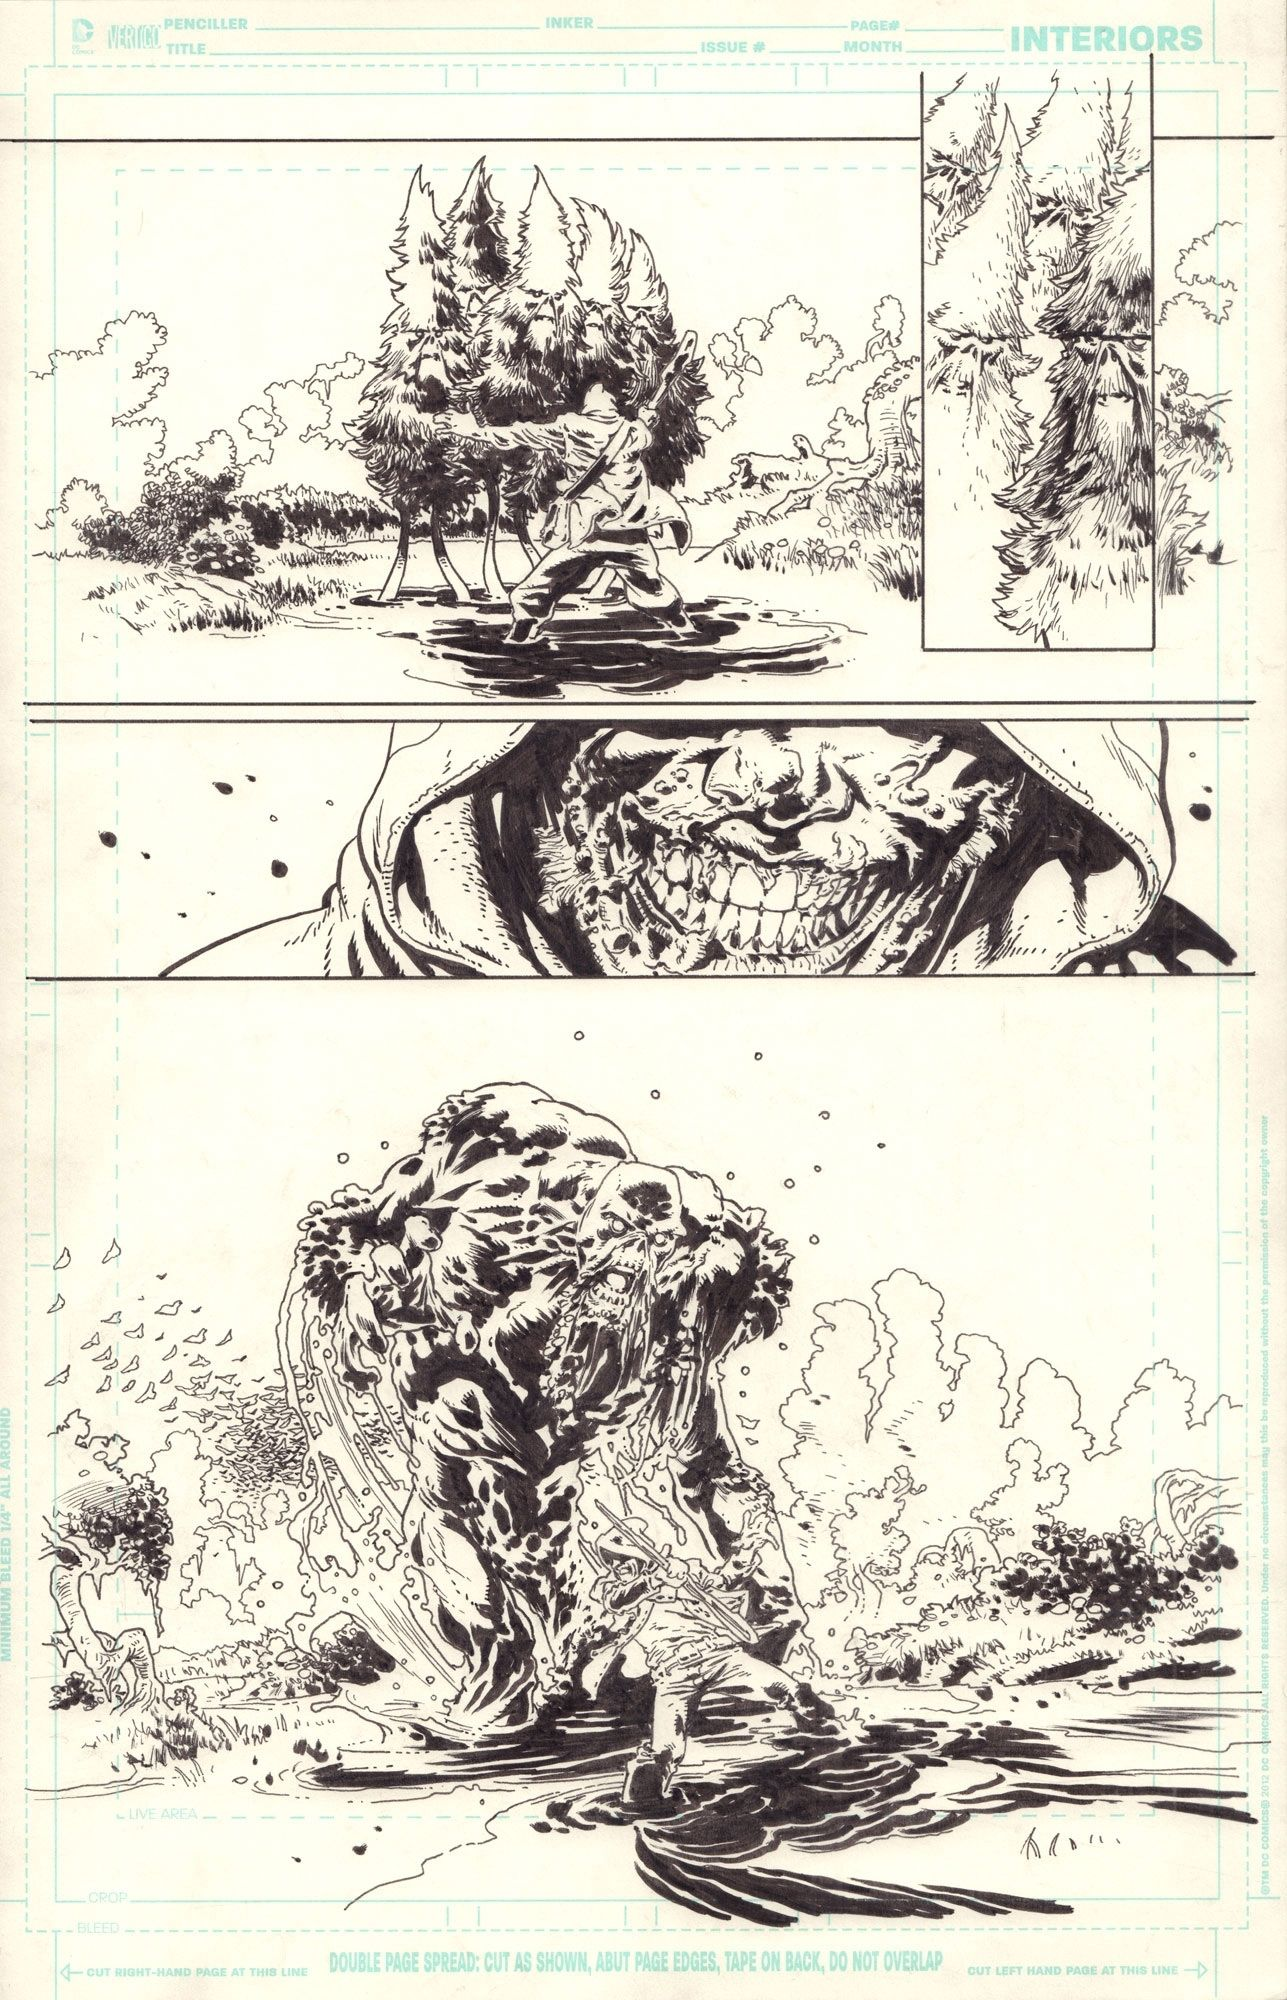 Swamp Thing vol 4 #24 / 6